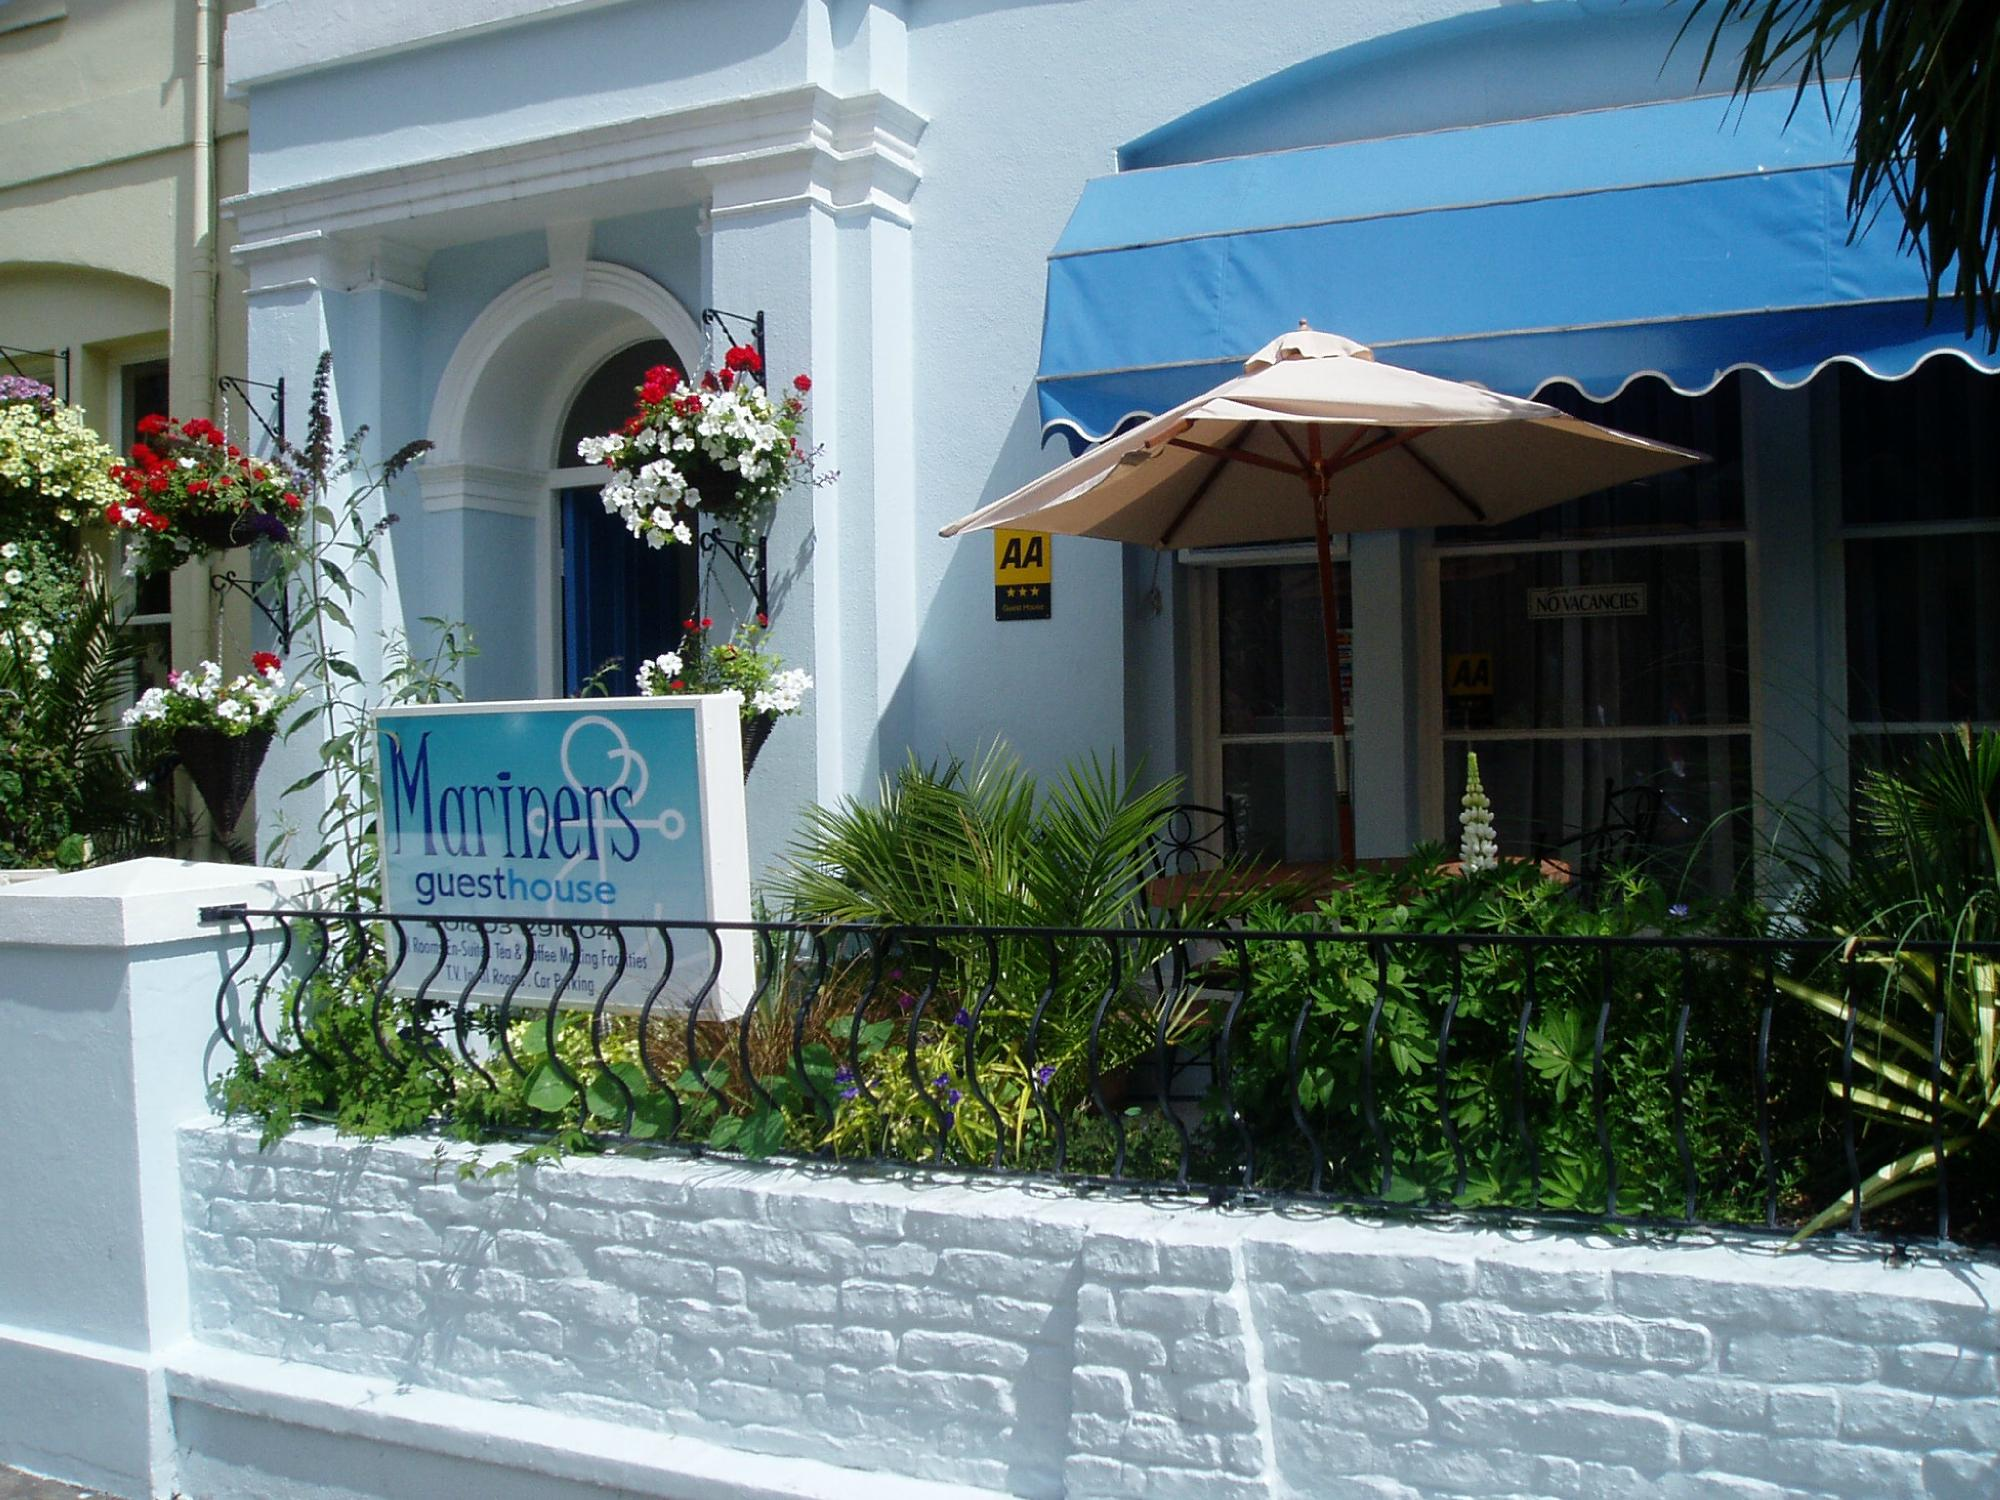 Mariners Guesthouse